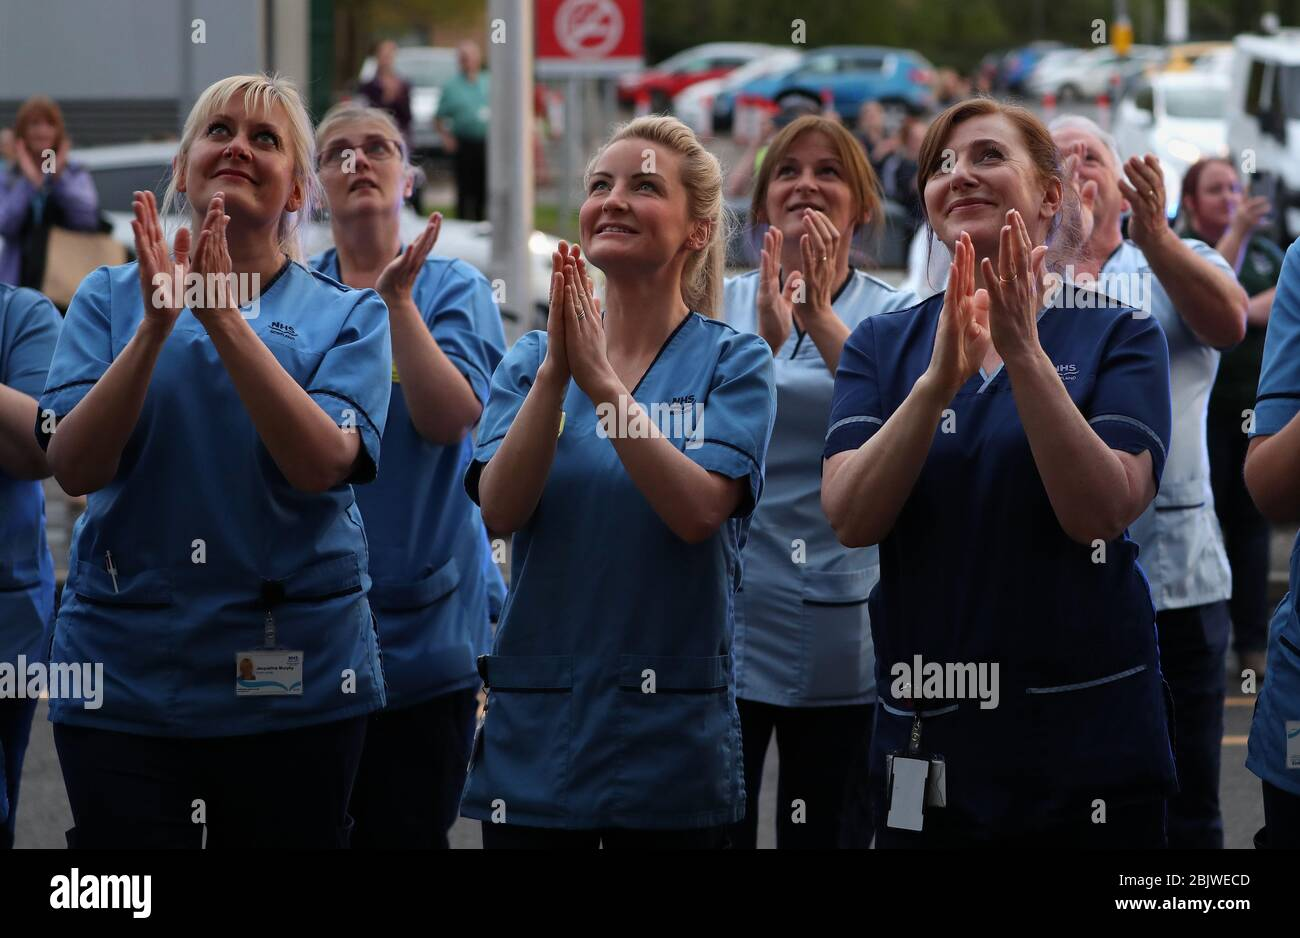 nursing-staff-clap-as-their-colleagues-look-out-from-a-window-at-the-queen-elizabeth-university-hospital-in-glasgow-as-they-join-in-the-applause-to-salute-local-heroes-during-thursdays-nationwide-clap-for-carers-to-recognise-and-support-nhs-workers-and-carers-fighting-the-coronavirus-pandemic-2BJWECD.jpg?profile=RESIZE_400x